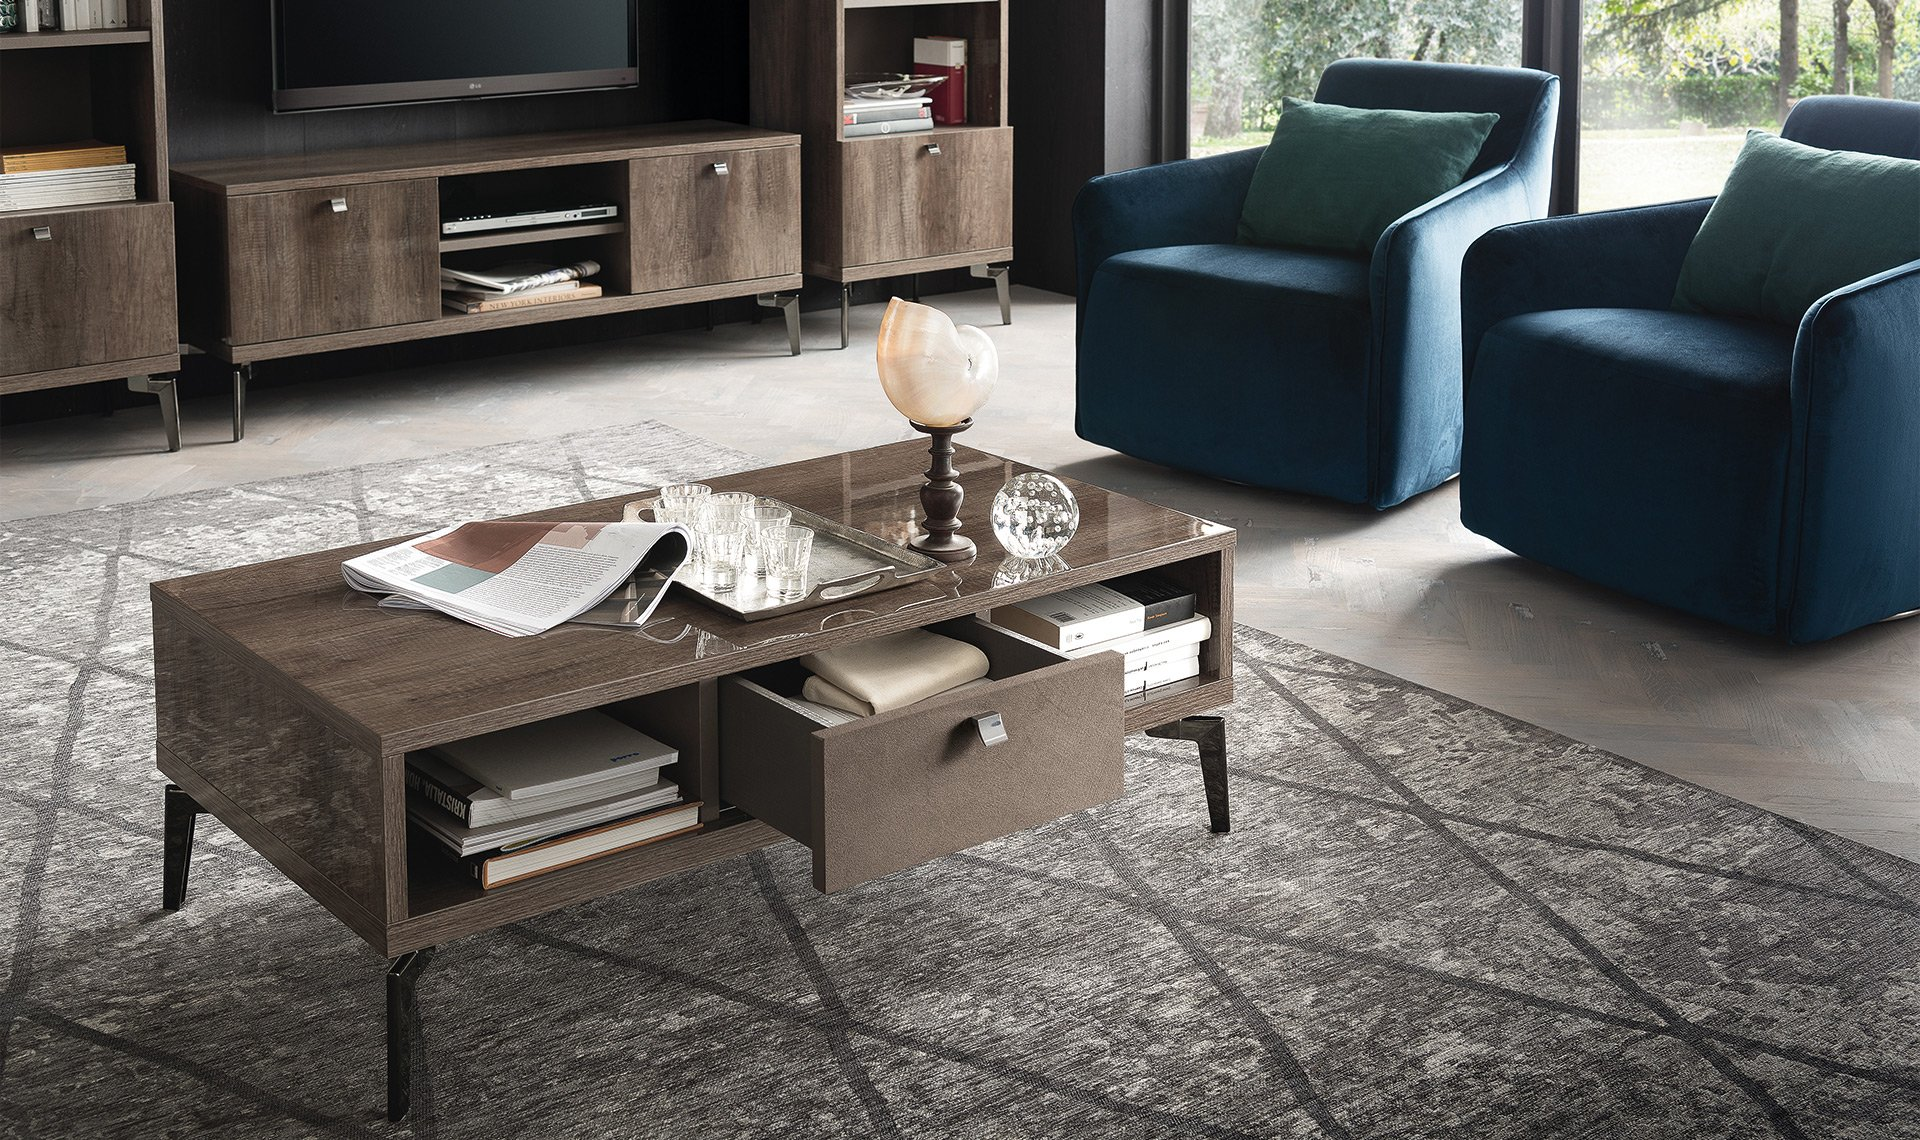 Contemporary coffe table!